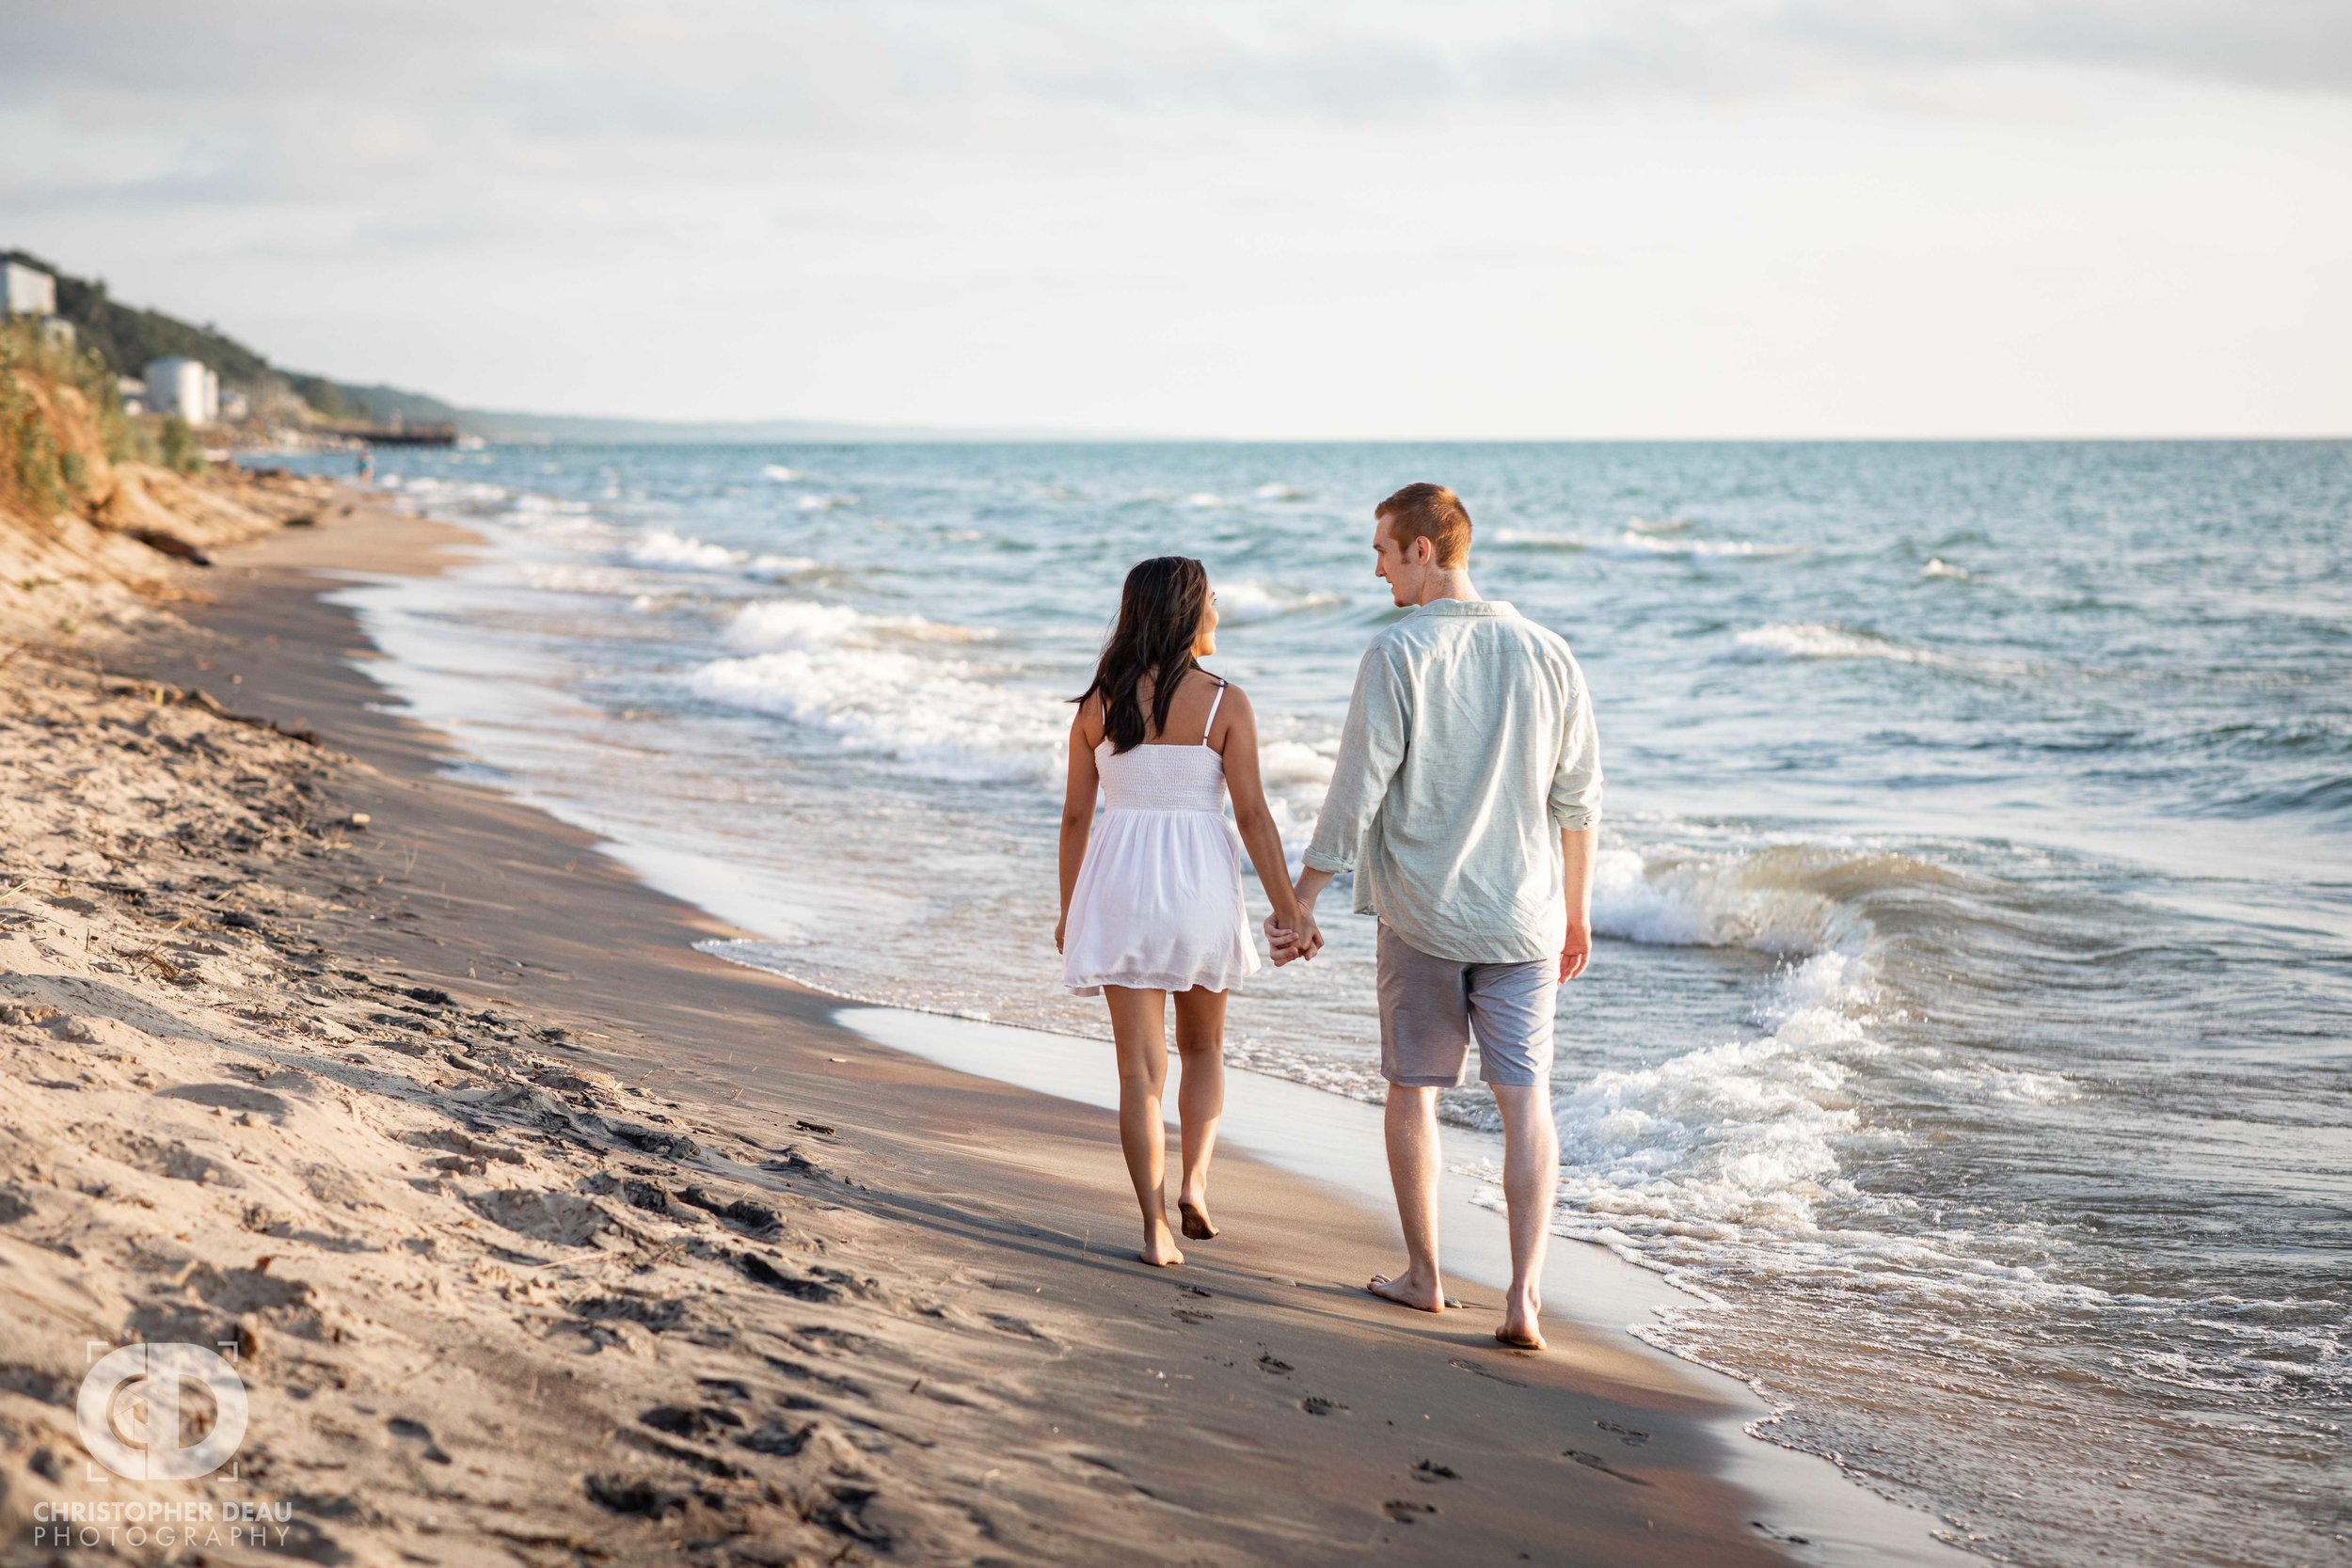 Beach engagement session at Van Buren State Park near South Haven, Michigan